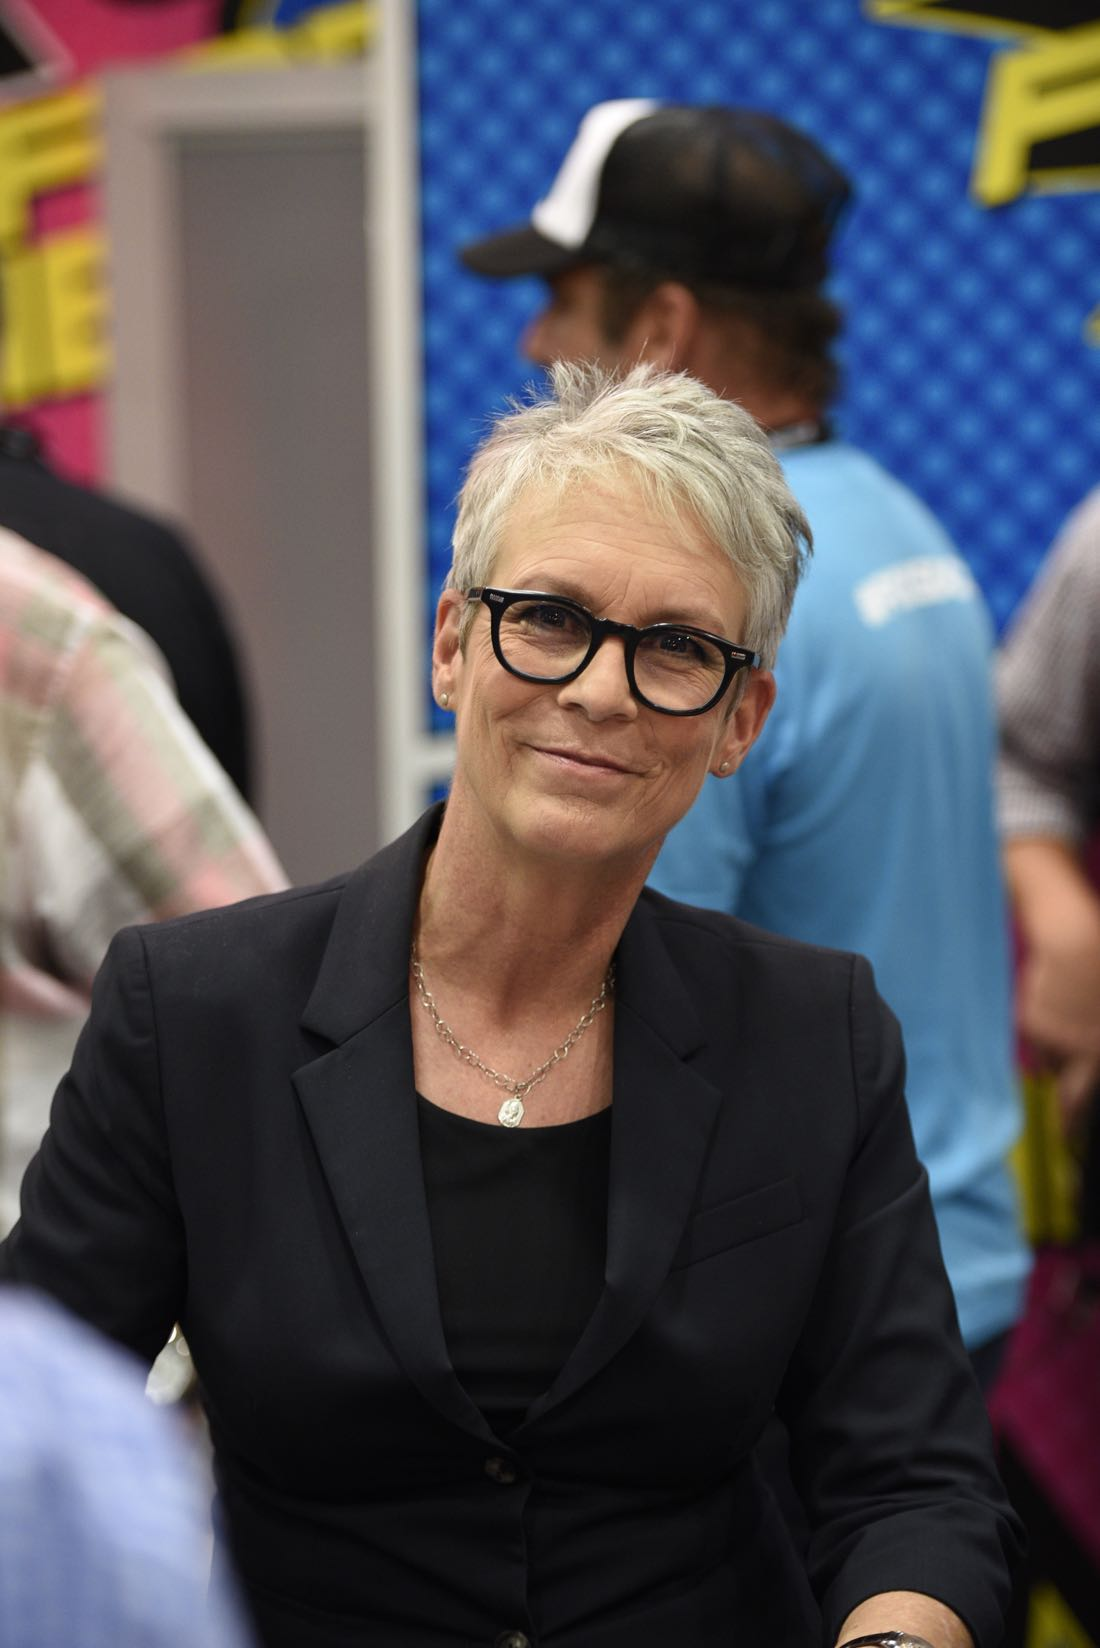 FOX FANFARE AT SAN DIEGO COMIC-CON © 2016: (L-R) Cast Members Jamie Lee Curtis during the SCREAM QUEENS booth signing on Friday, July 22 at the FOX FANFARE AT SAN DIEGO COMIC-CON © 2016. CR: Alan Hess/FOX © 2016 FOX BROADCASTING